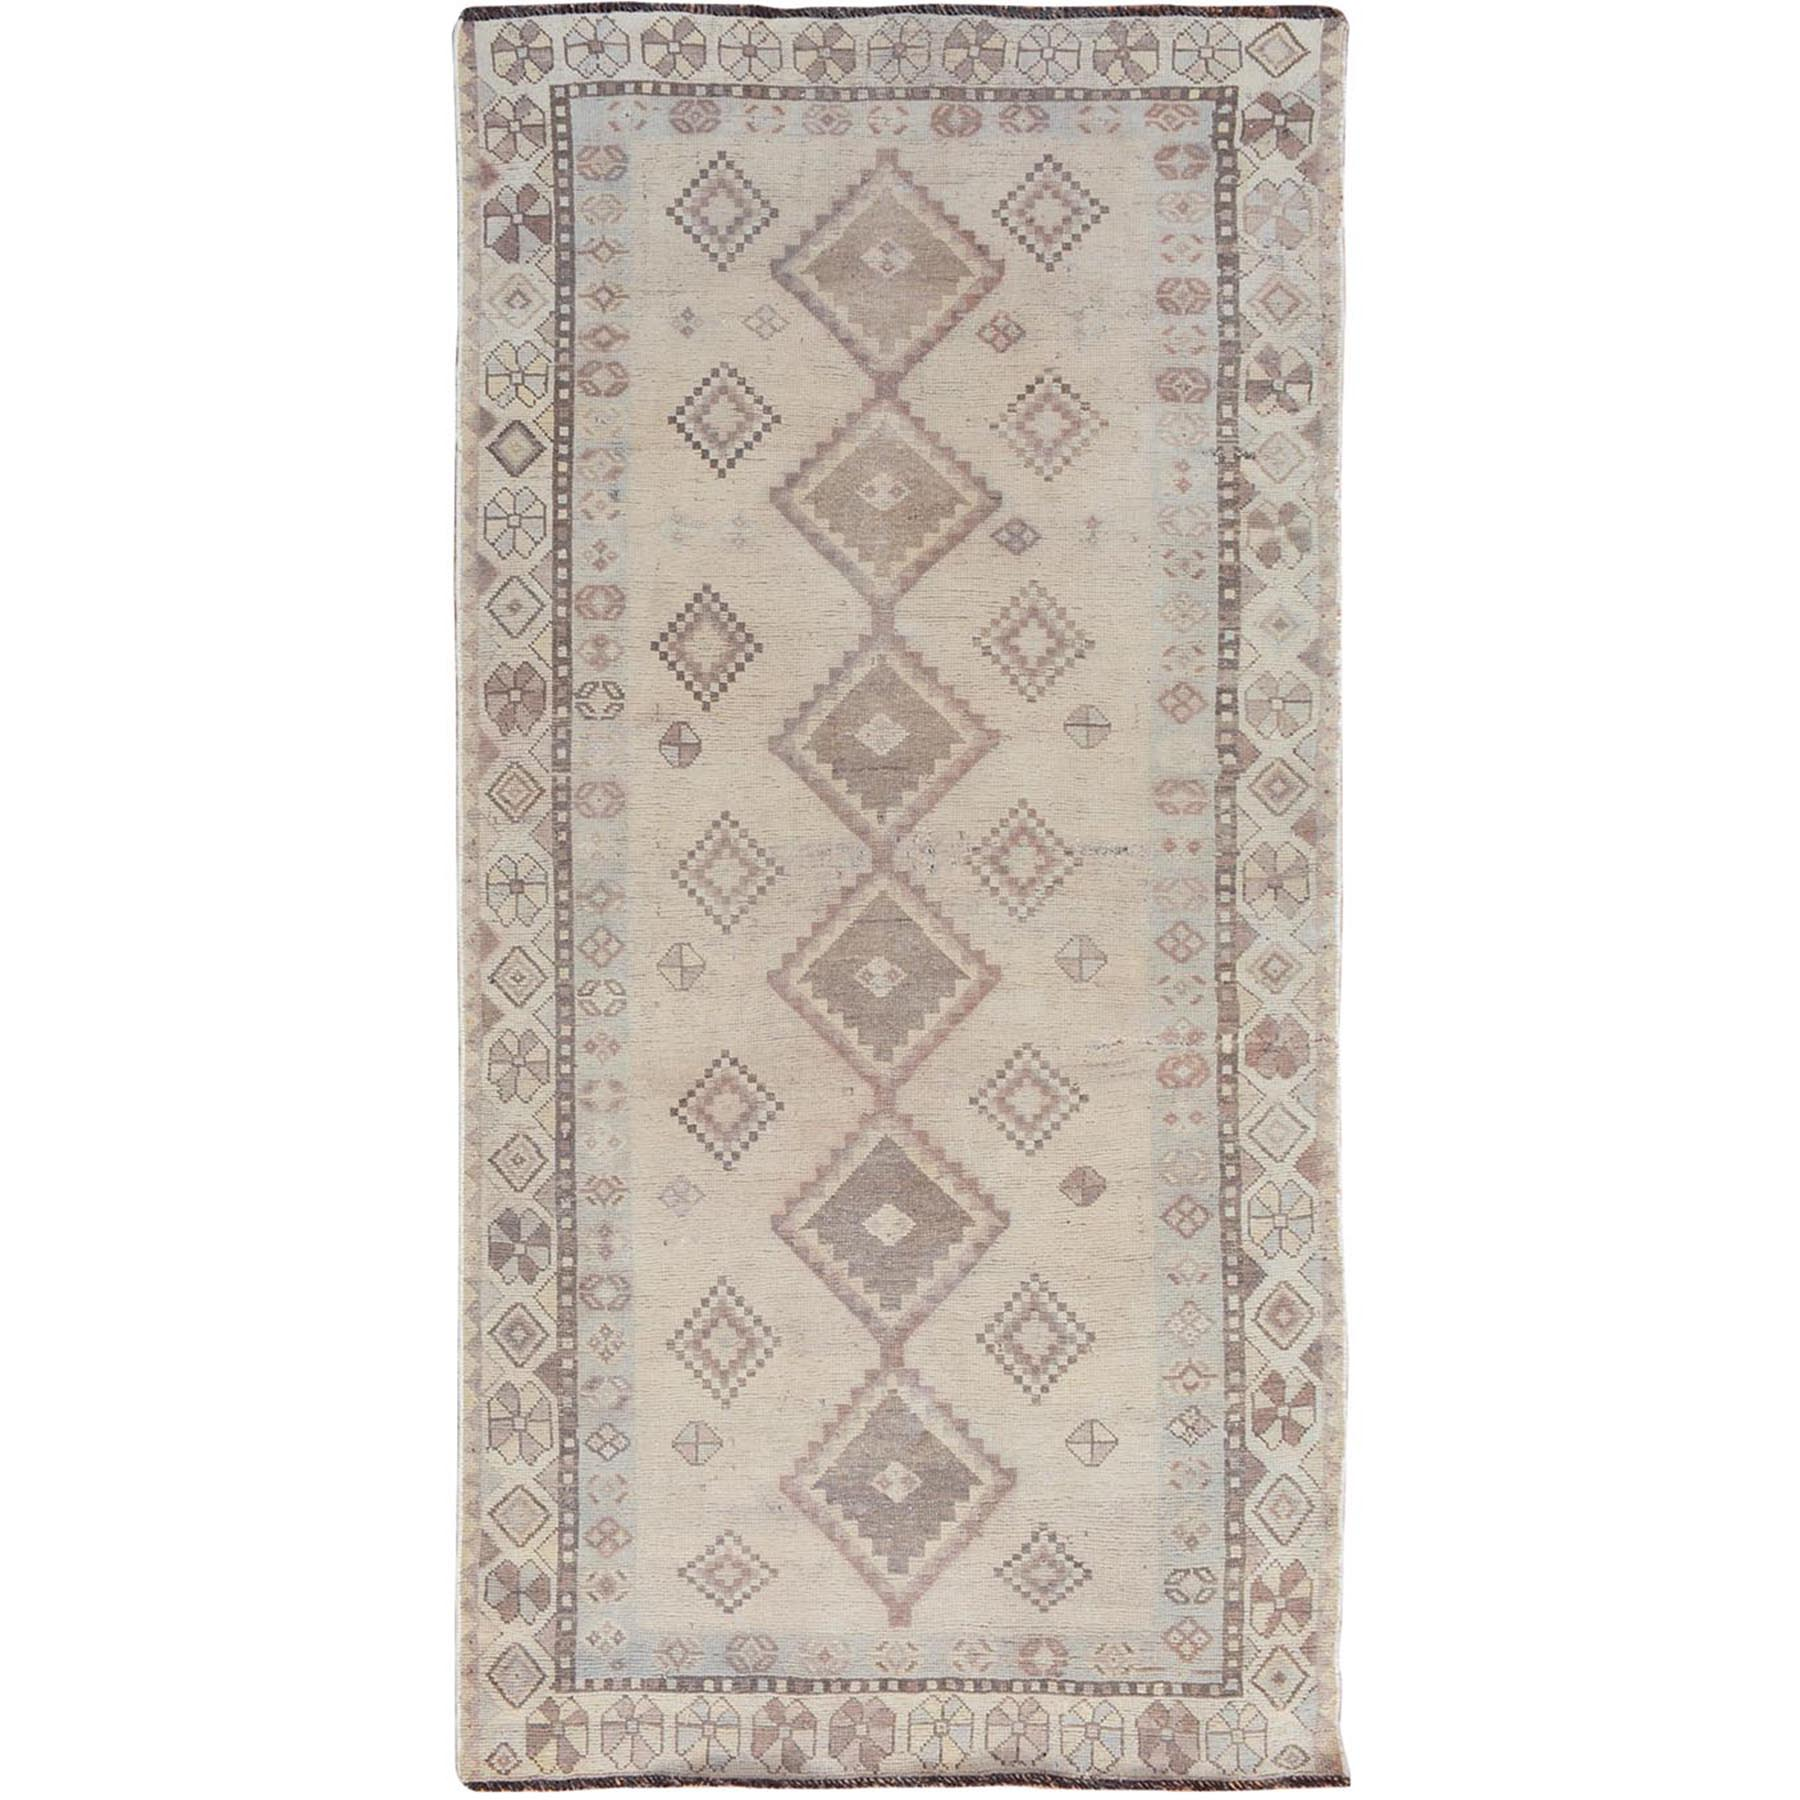 "4'x7'10"" Distressed Colors Vintage And Worn Down Persian Shiraz Wide Runner Pure Wool Bohemian Rug"